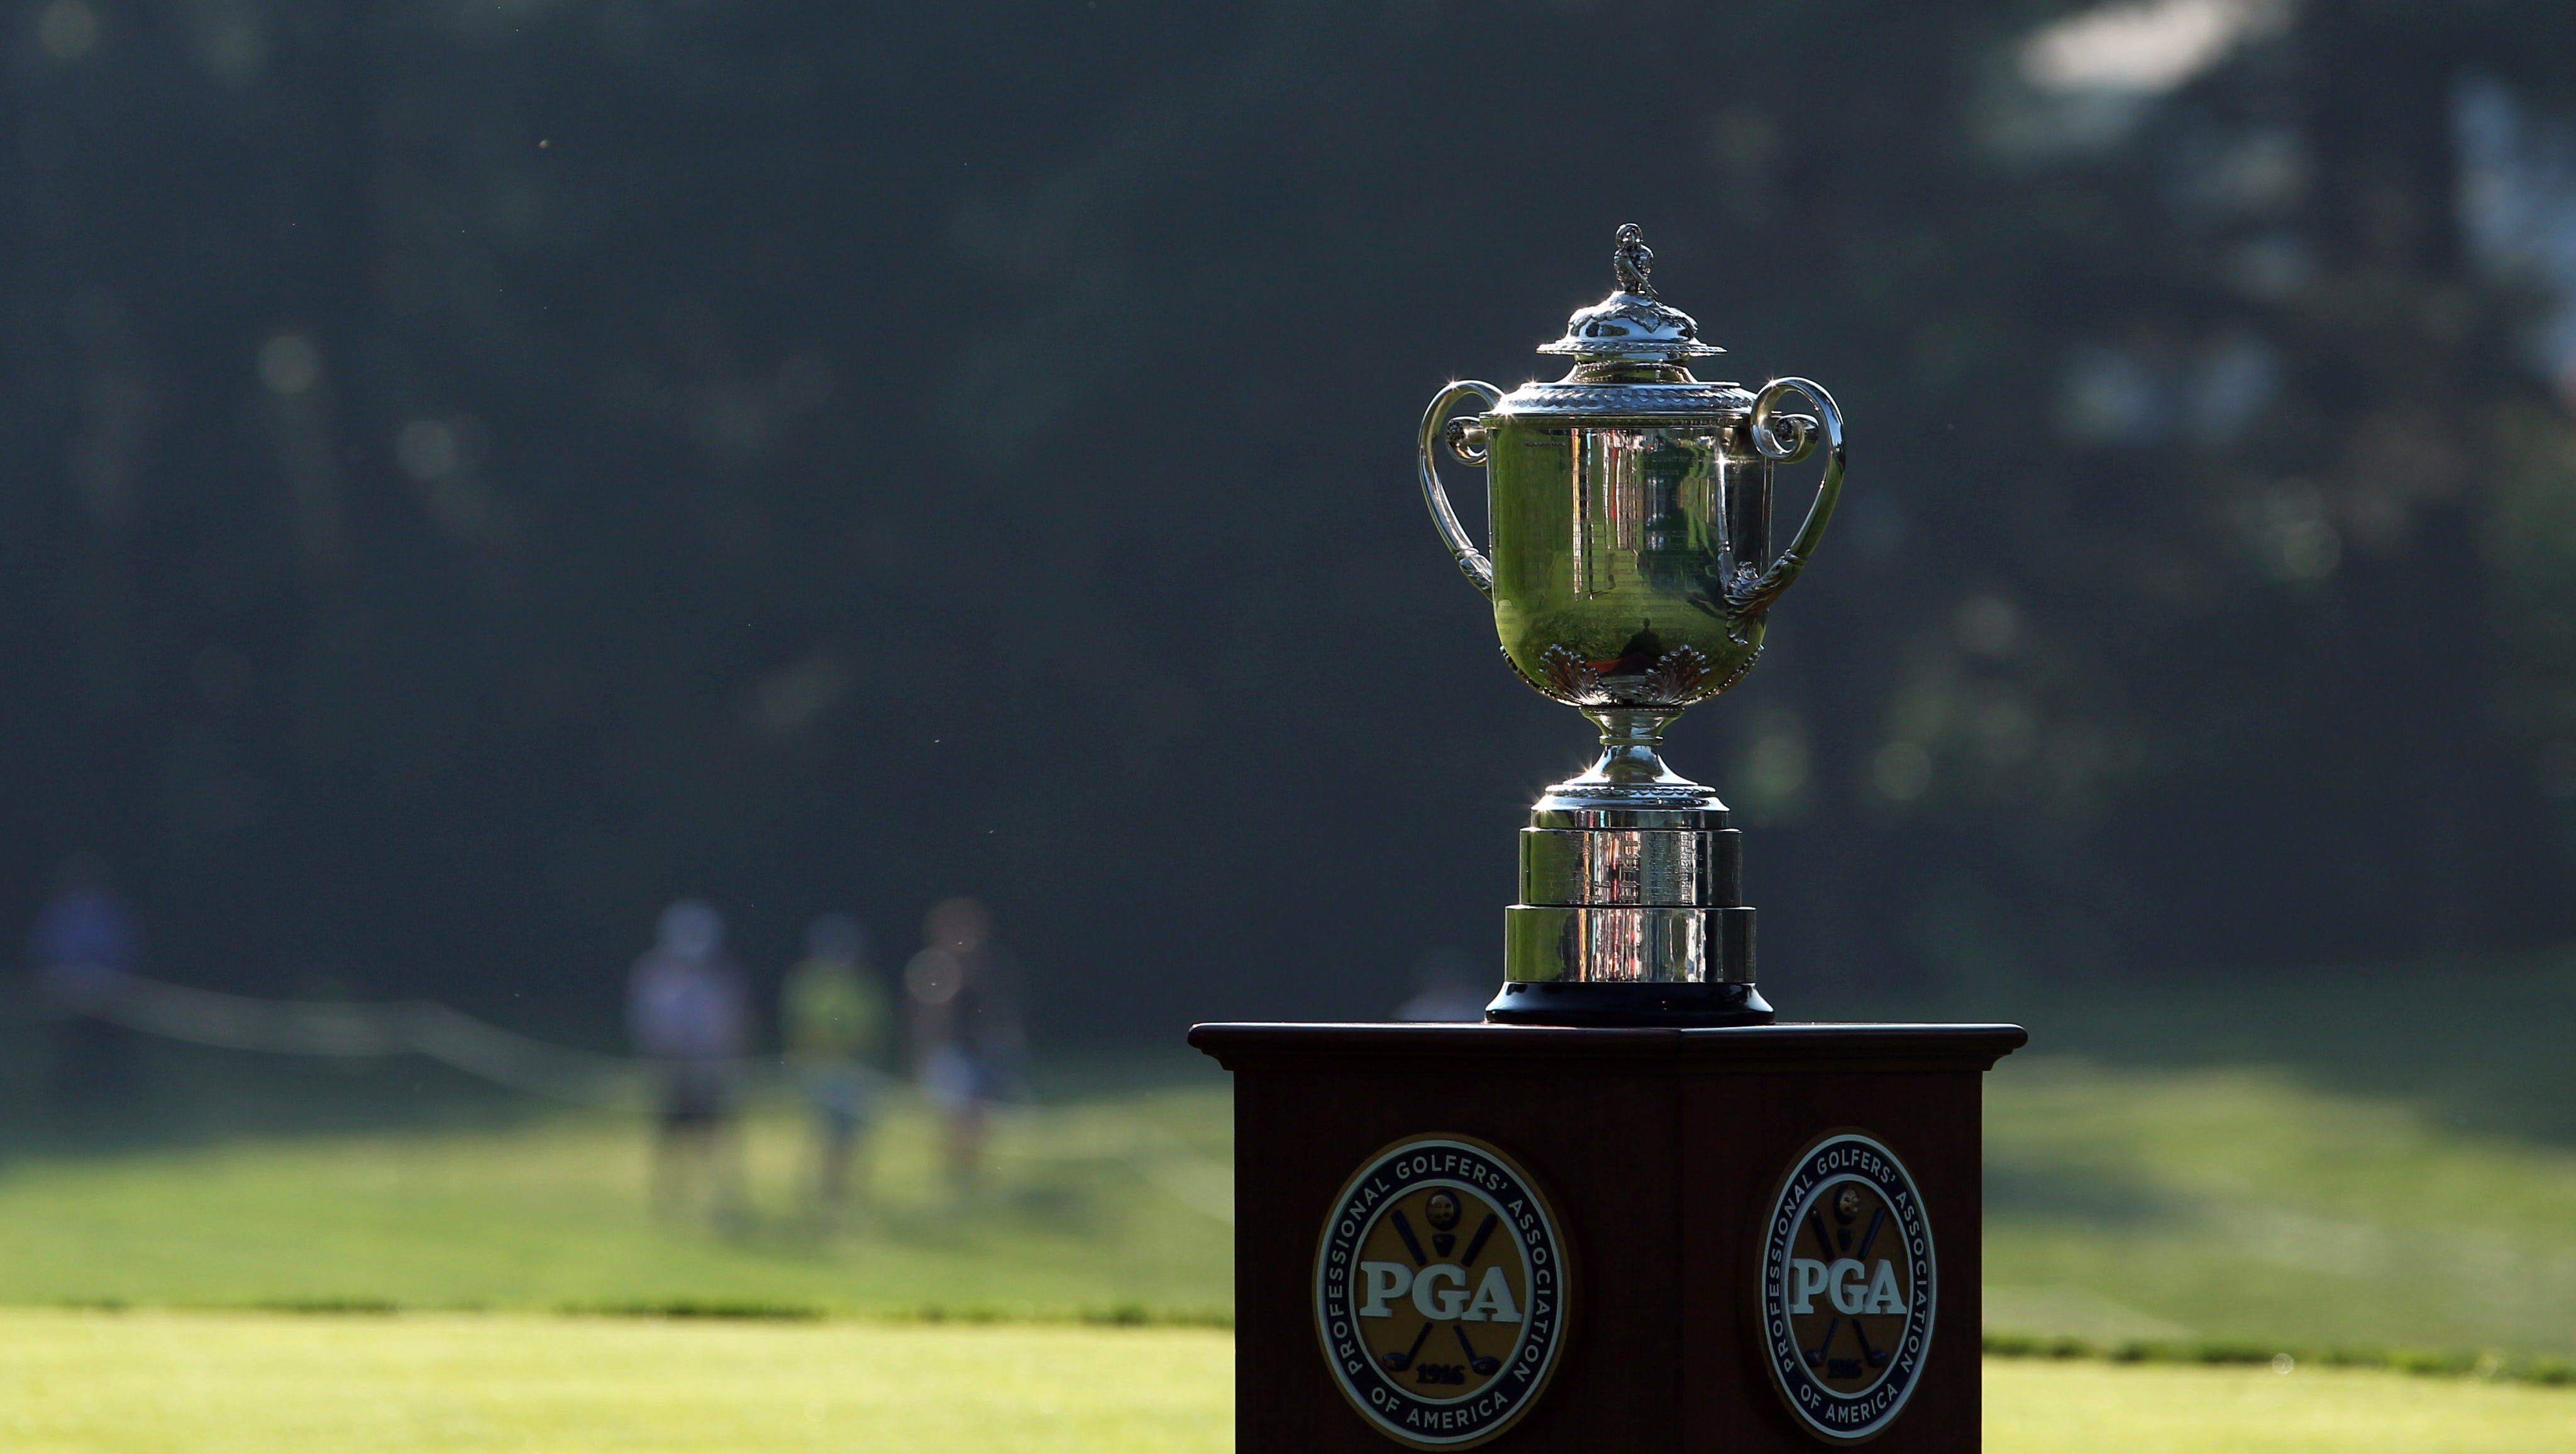 A view of the Wannamaker Trophy during the first round of the 95th PGA Championship at Oak Hill Country Club.